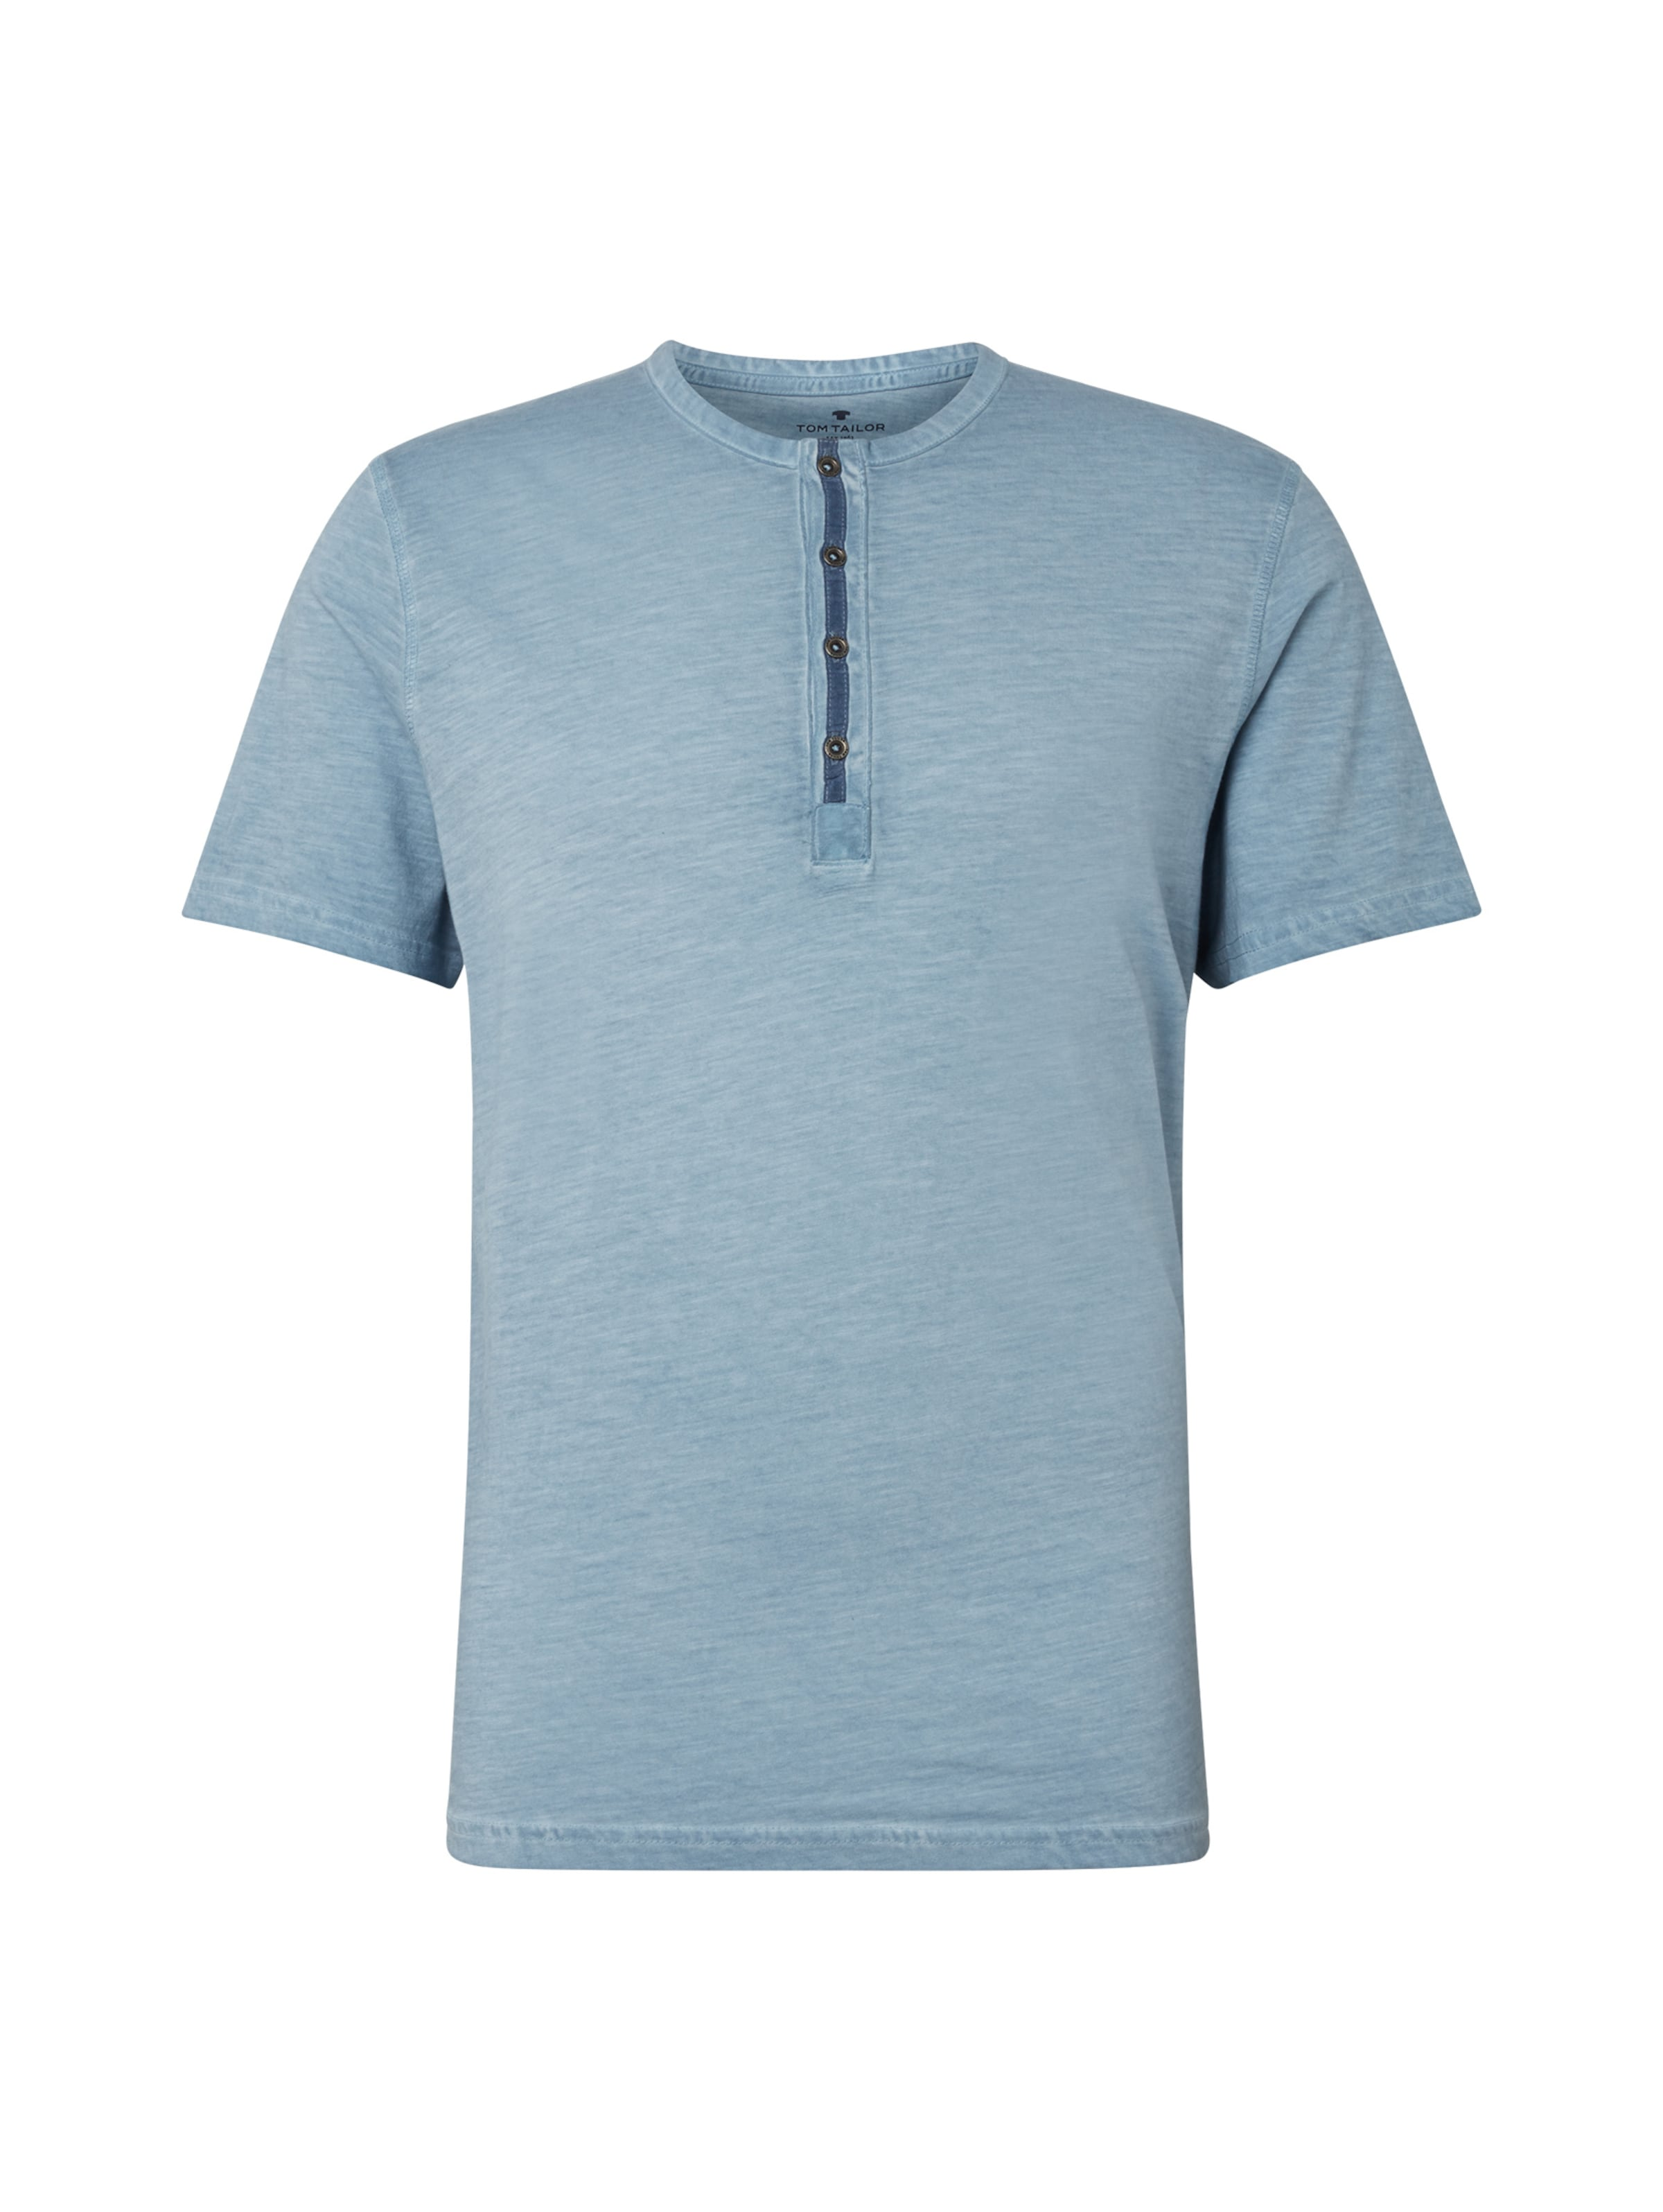 In Tom T shirt Rauchblau Tailor ZTuXwkiPO